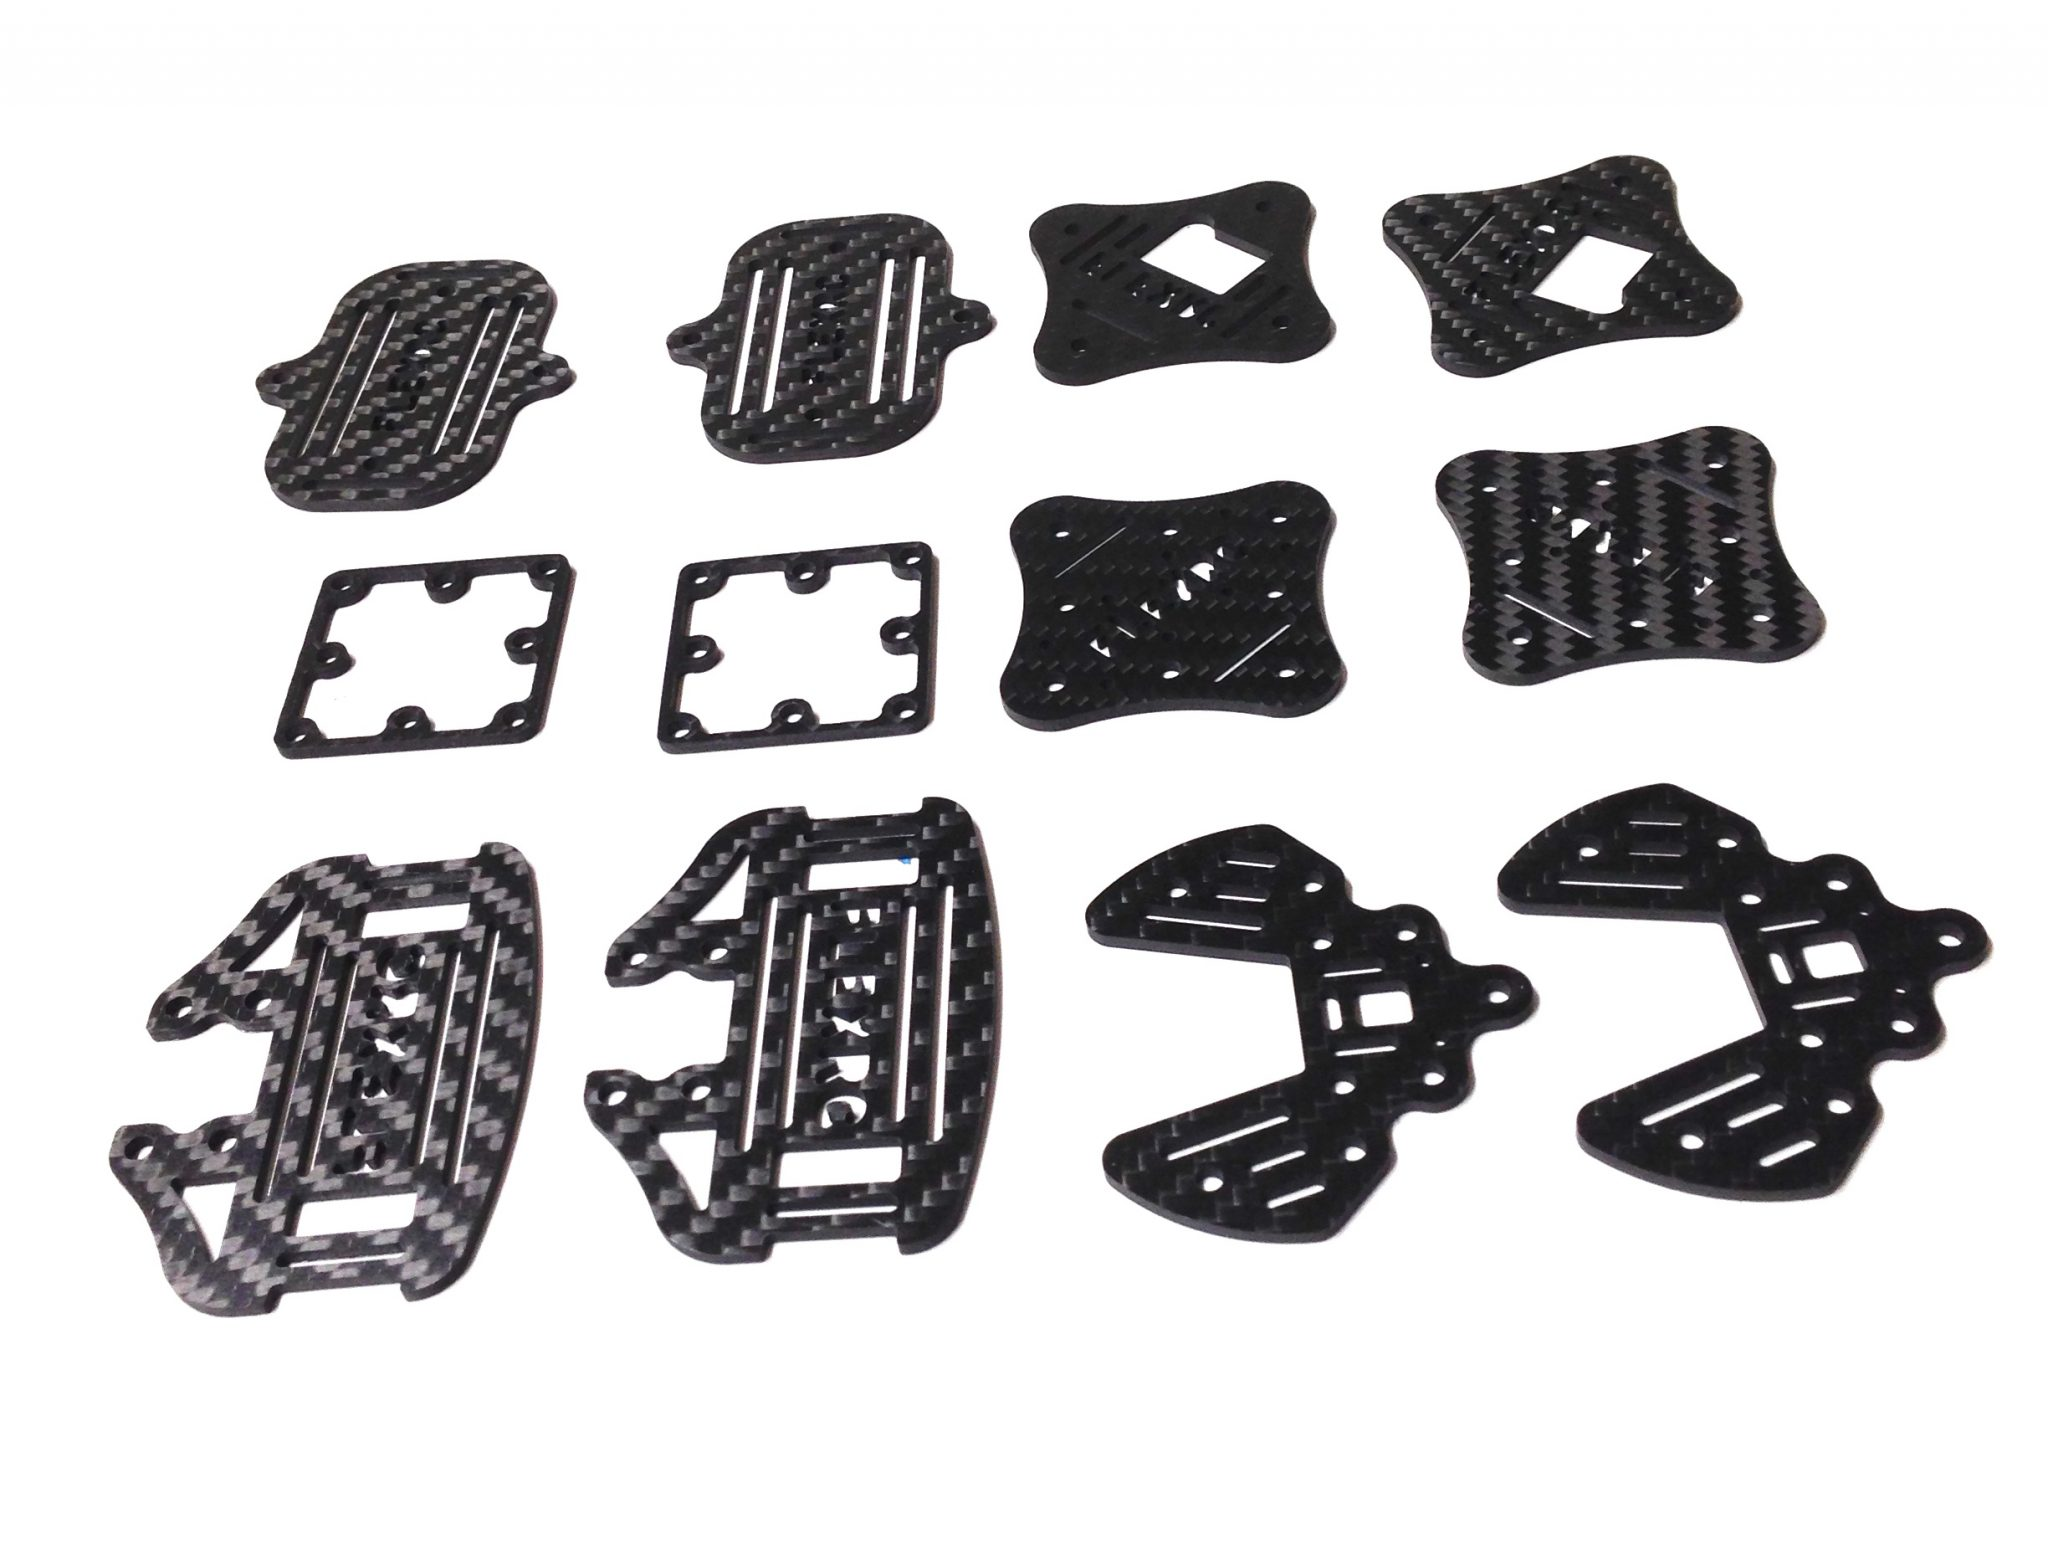 Owl - Extension plates kit